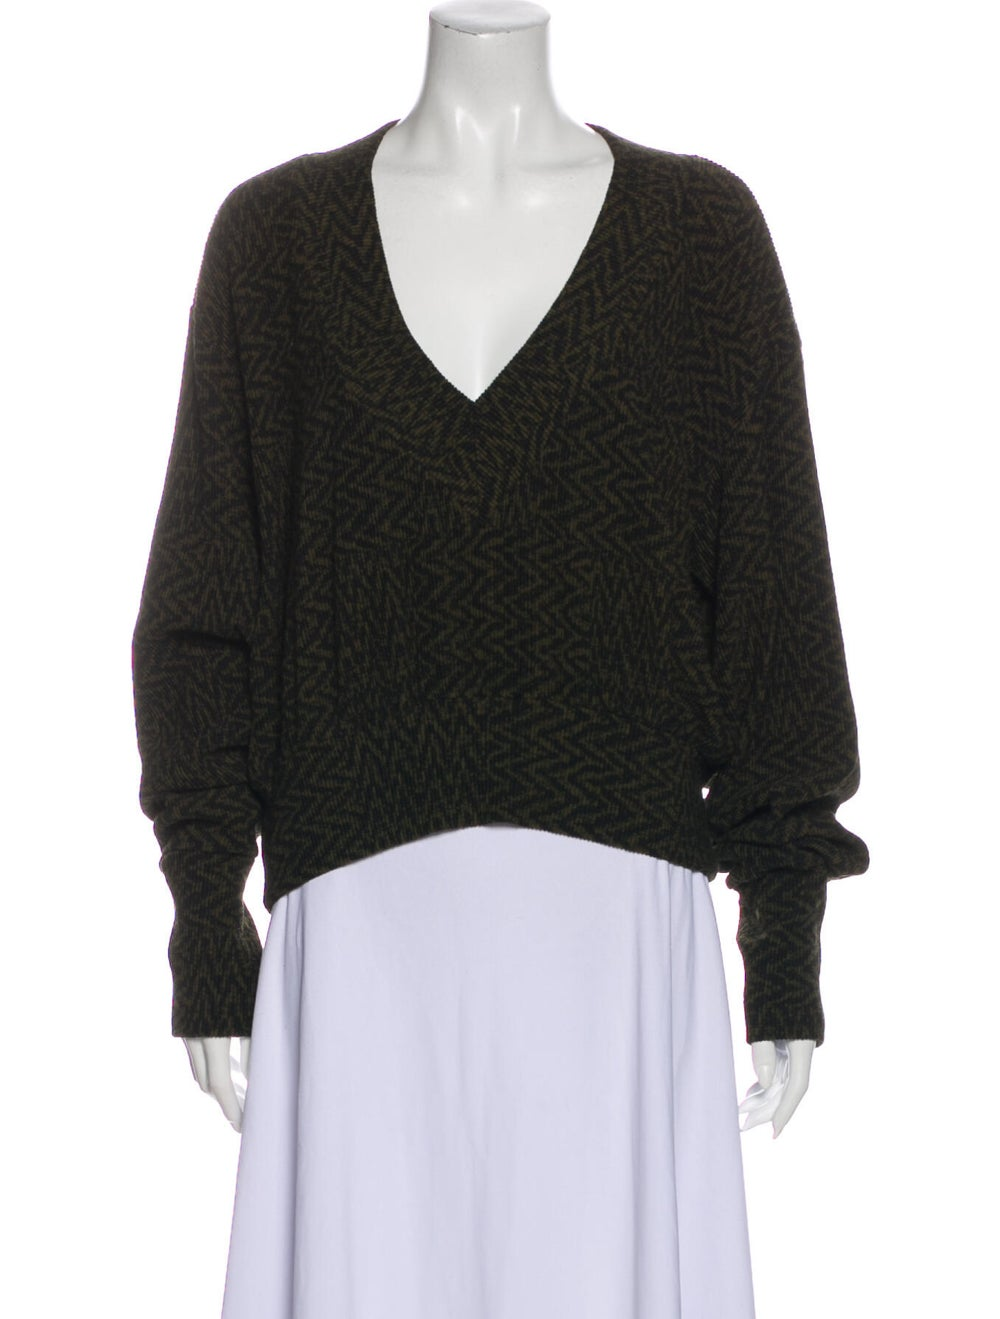 Beaufille V-Neck Sweater w/ Tags Green - image 1